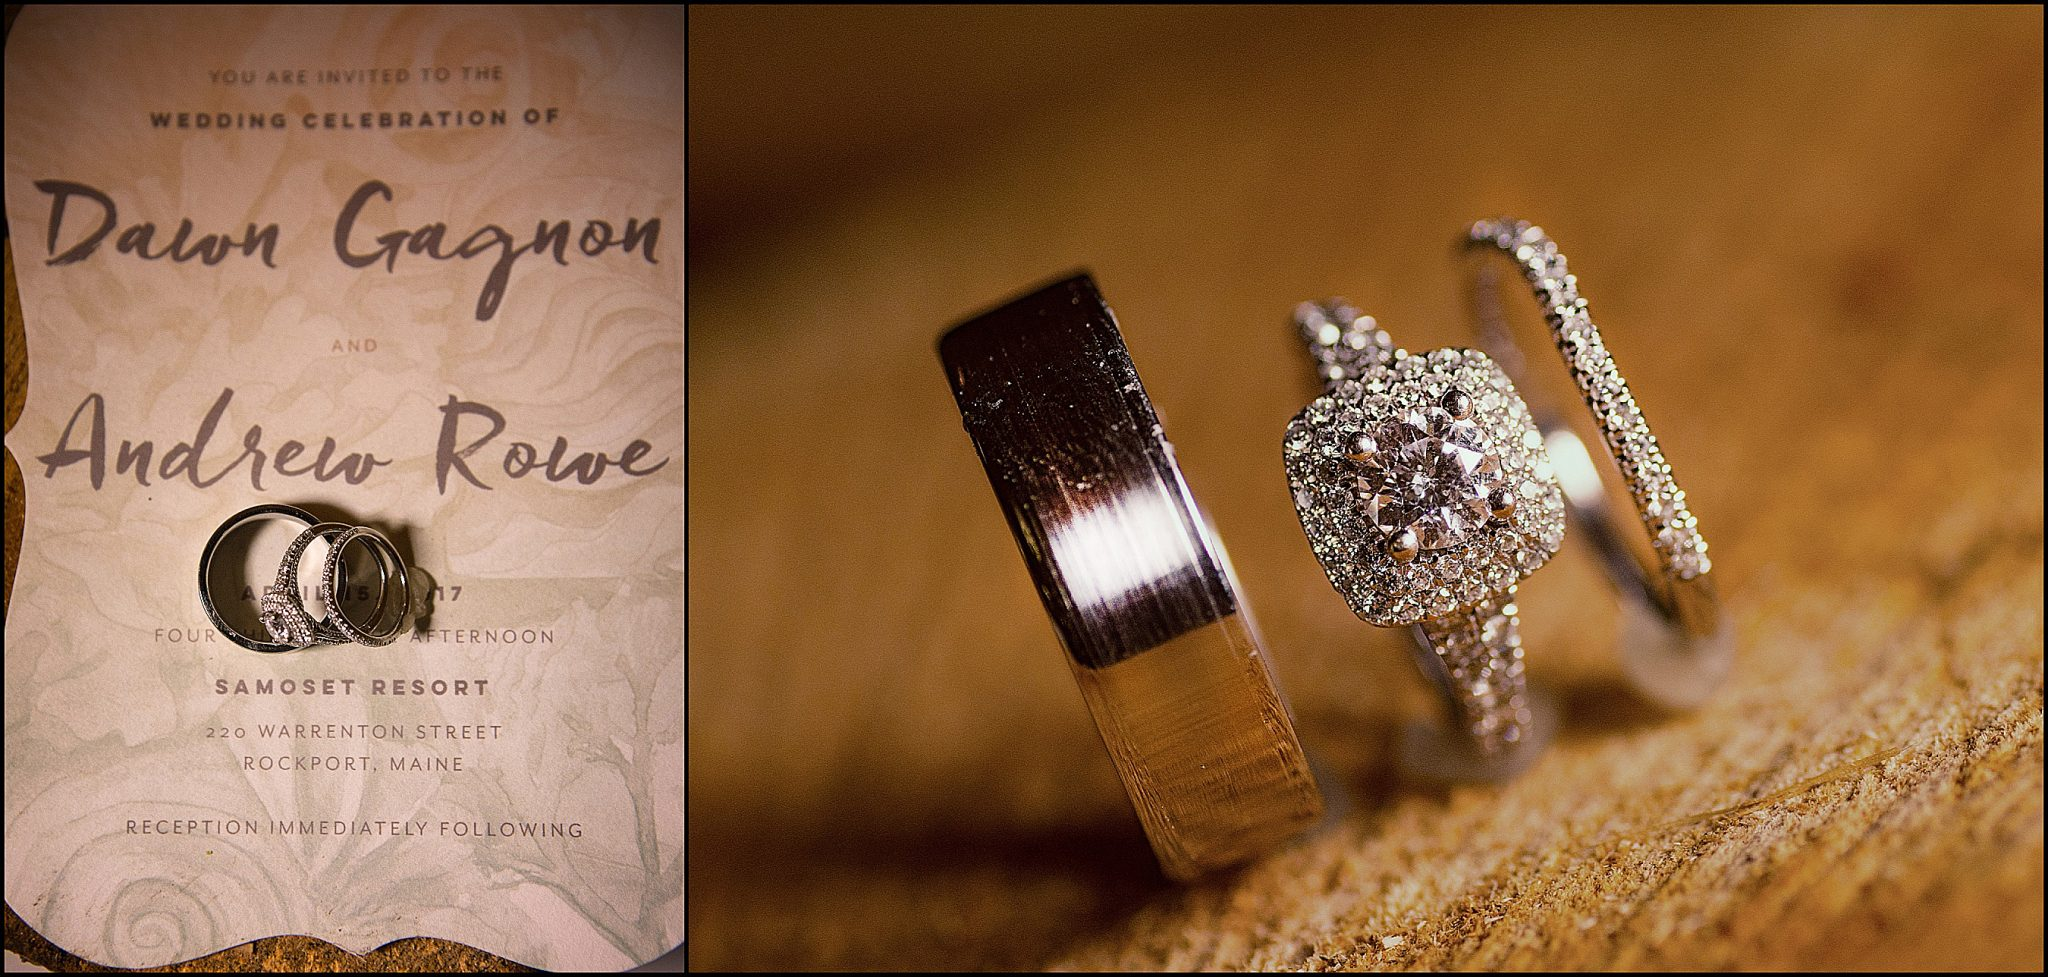 These macro shots of the wedding rings show off the beautiful designs